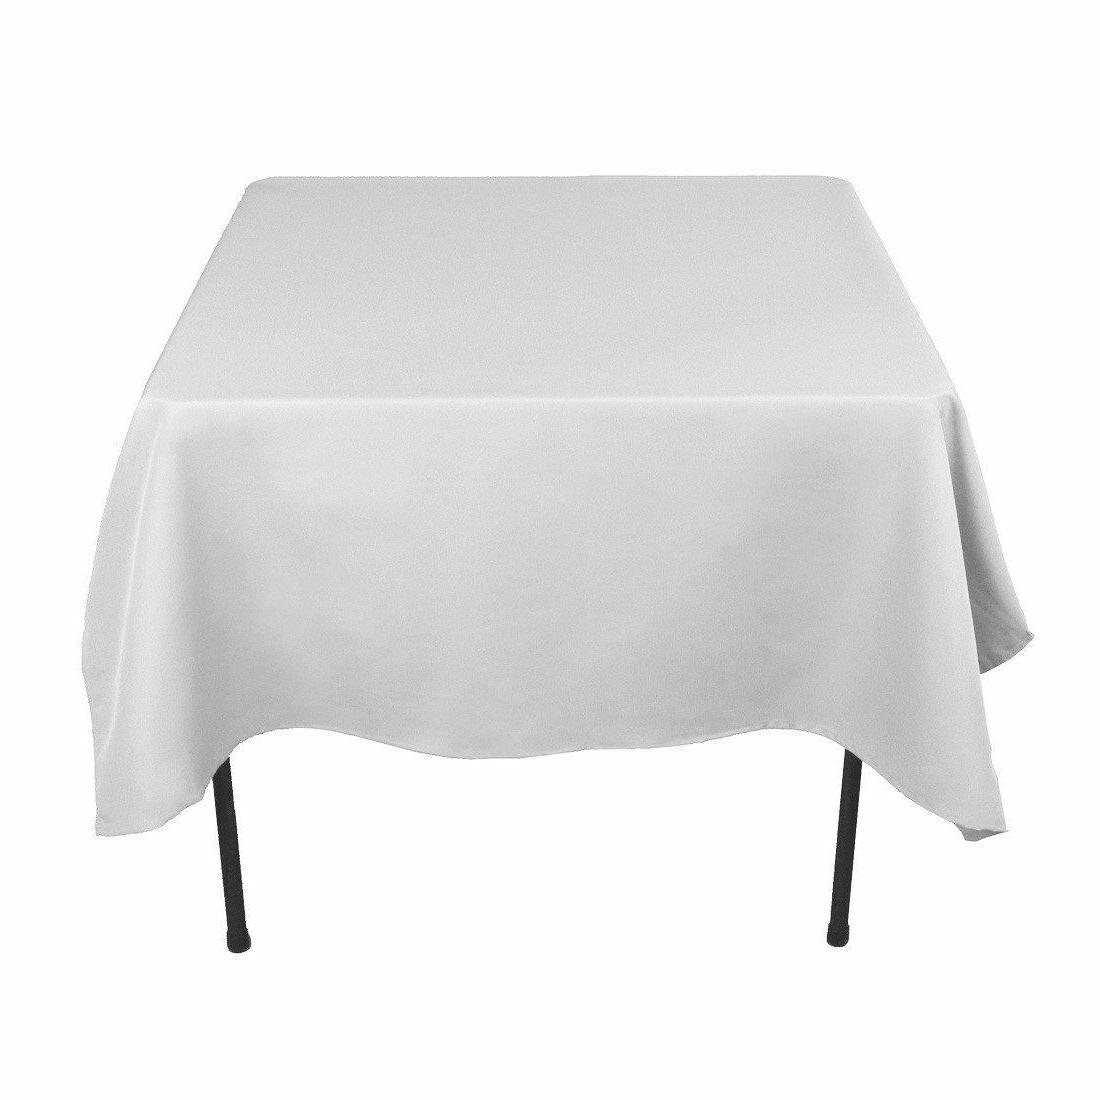 54 x 54 square seamless tablecloth